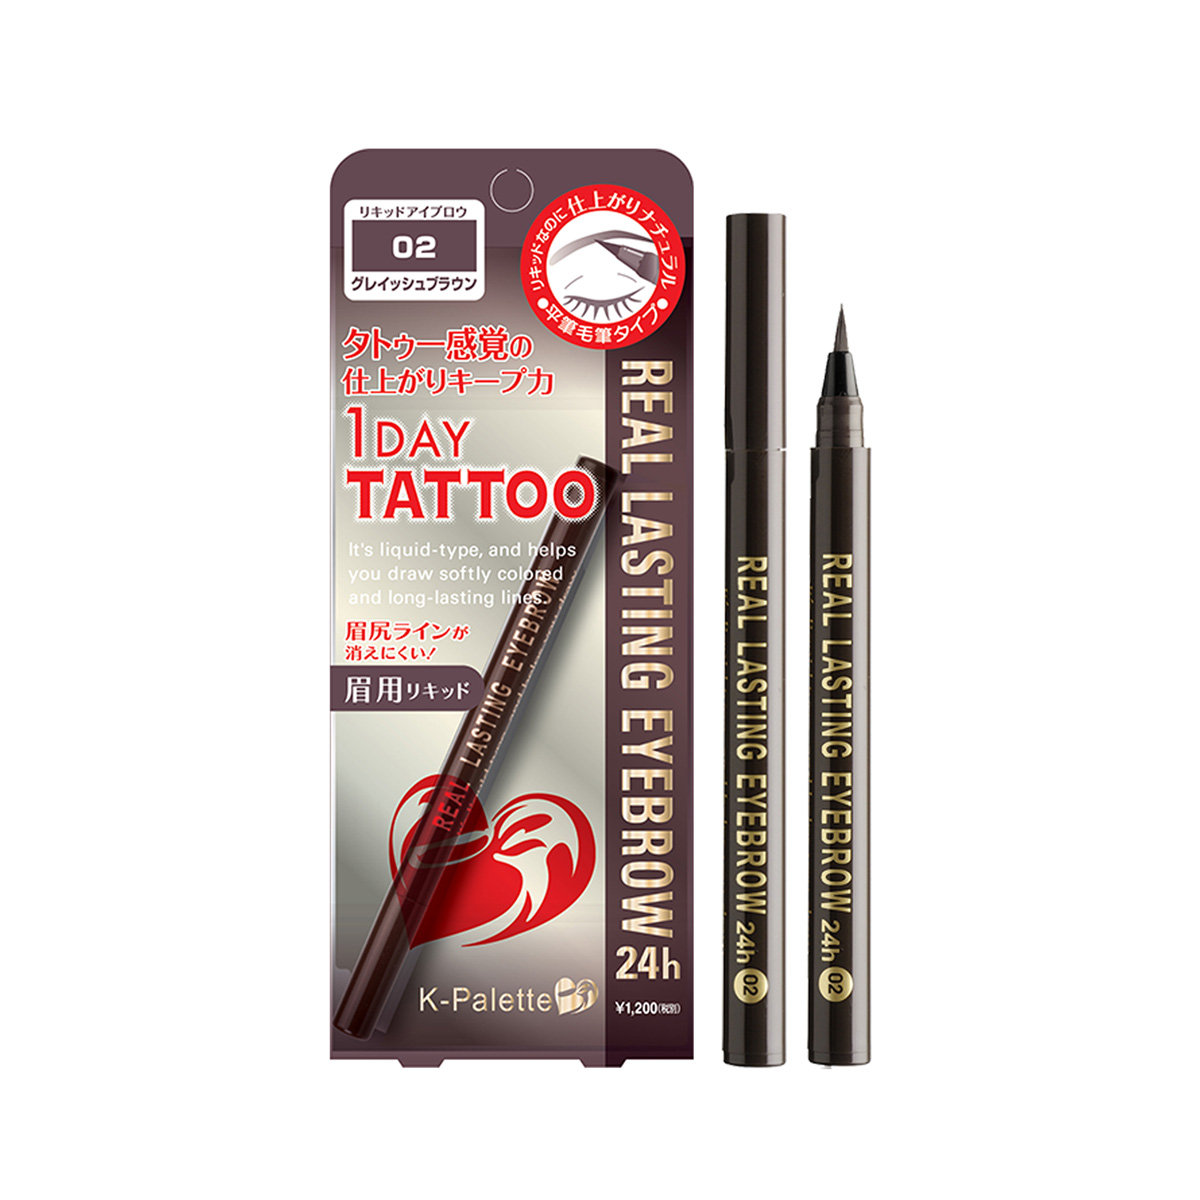 K-Palette 24h Real Lasting Eyebrow Liner - Grayish Brown